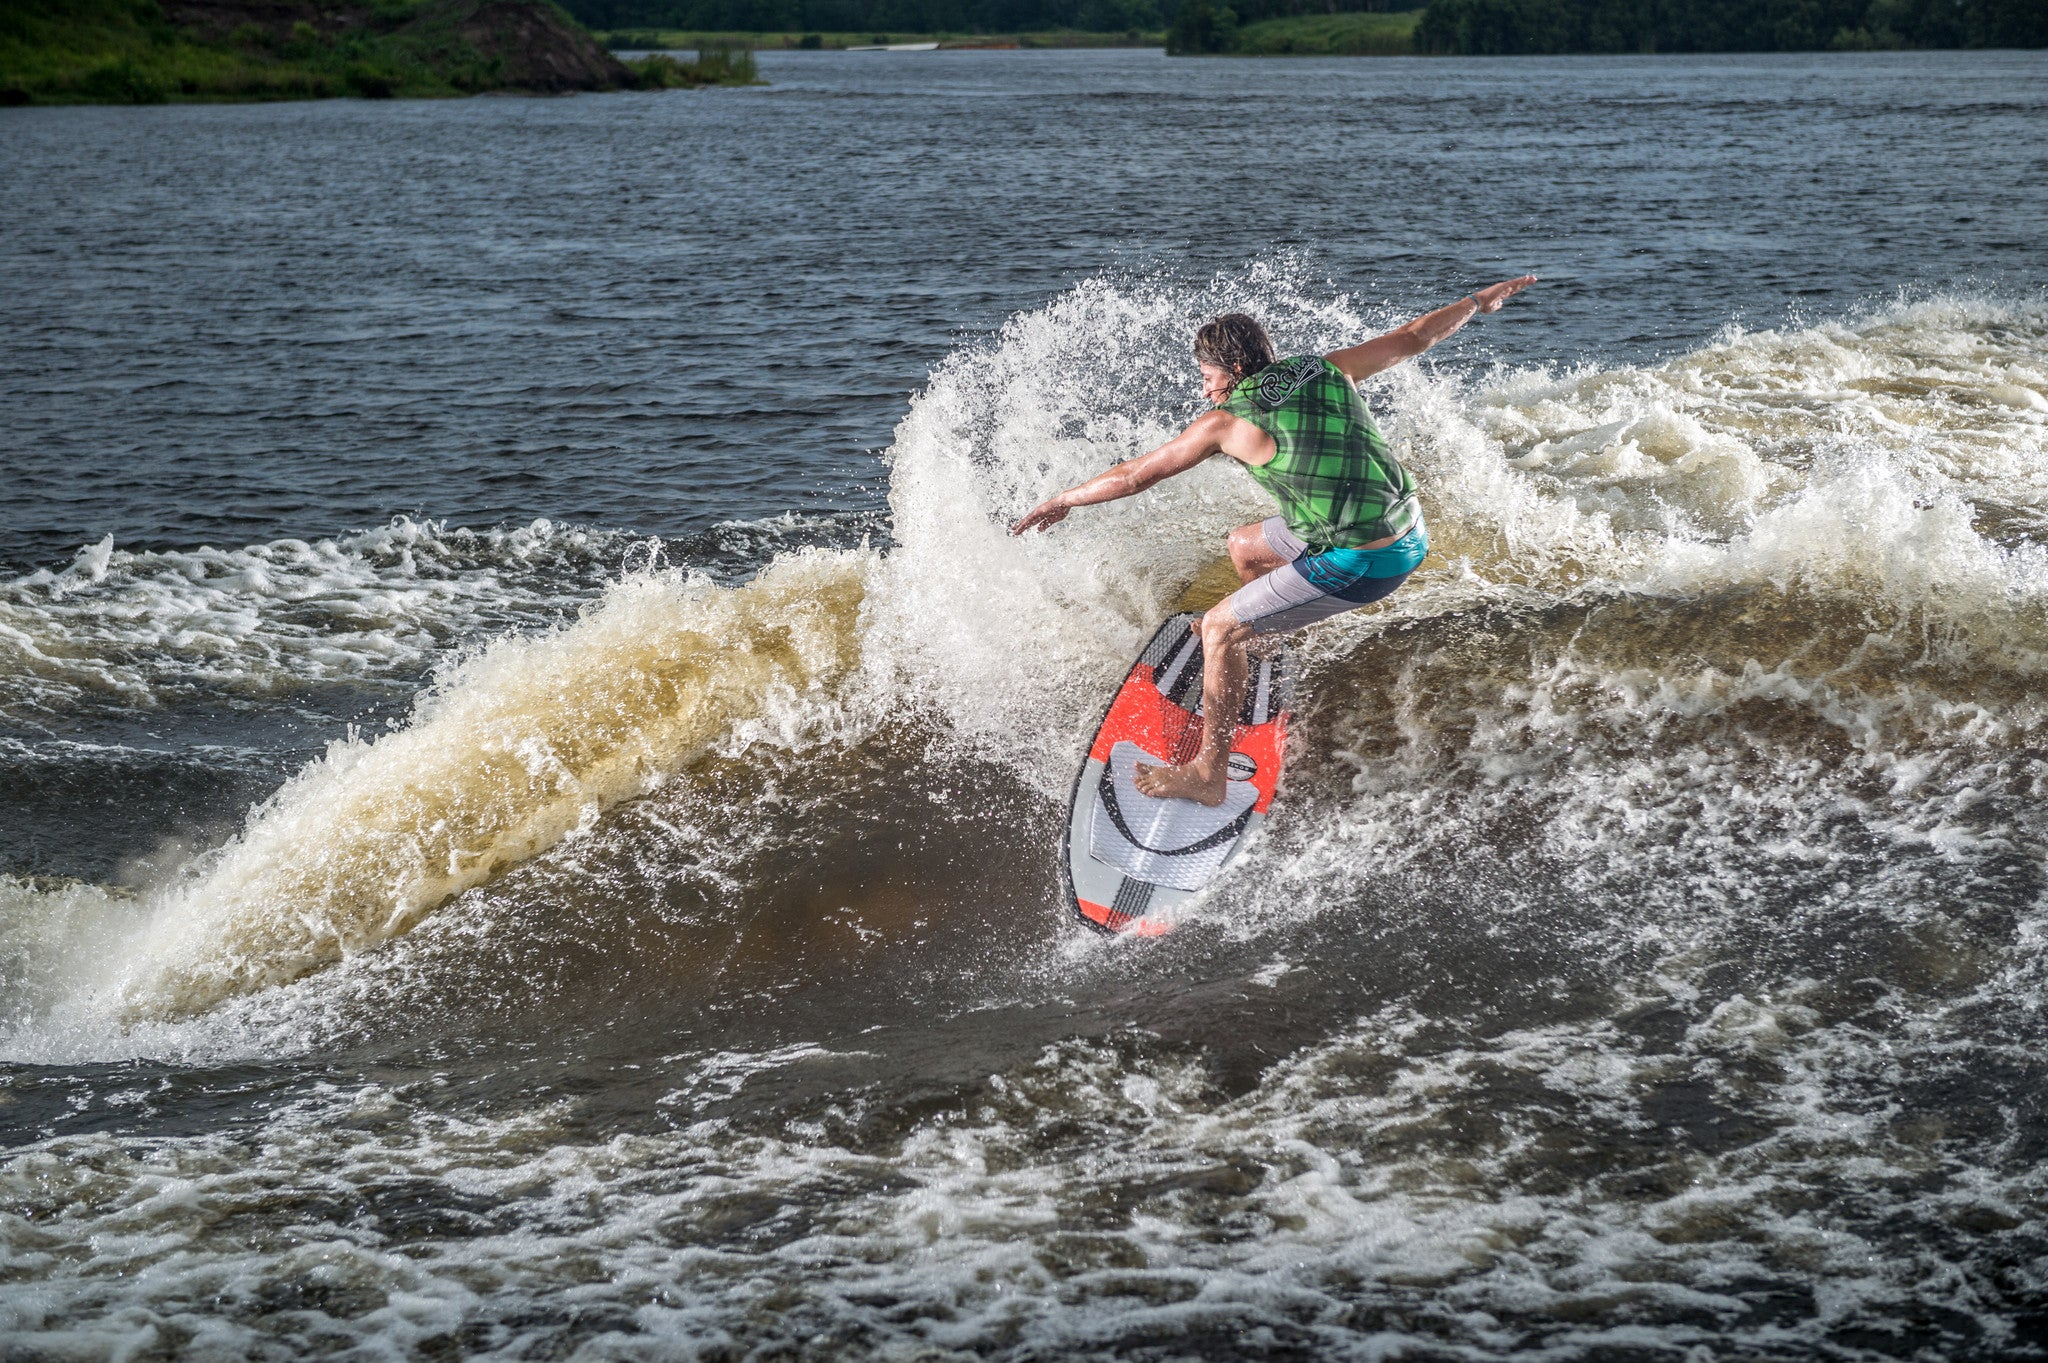 How to Find the Right Size Wakesurf Board